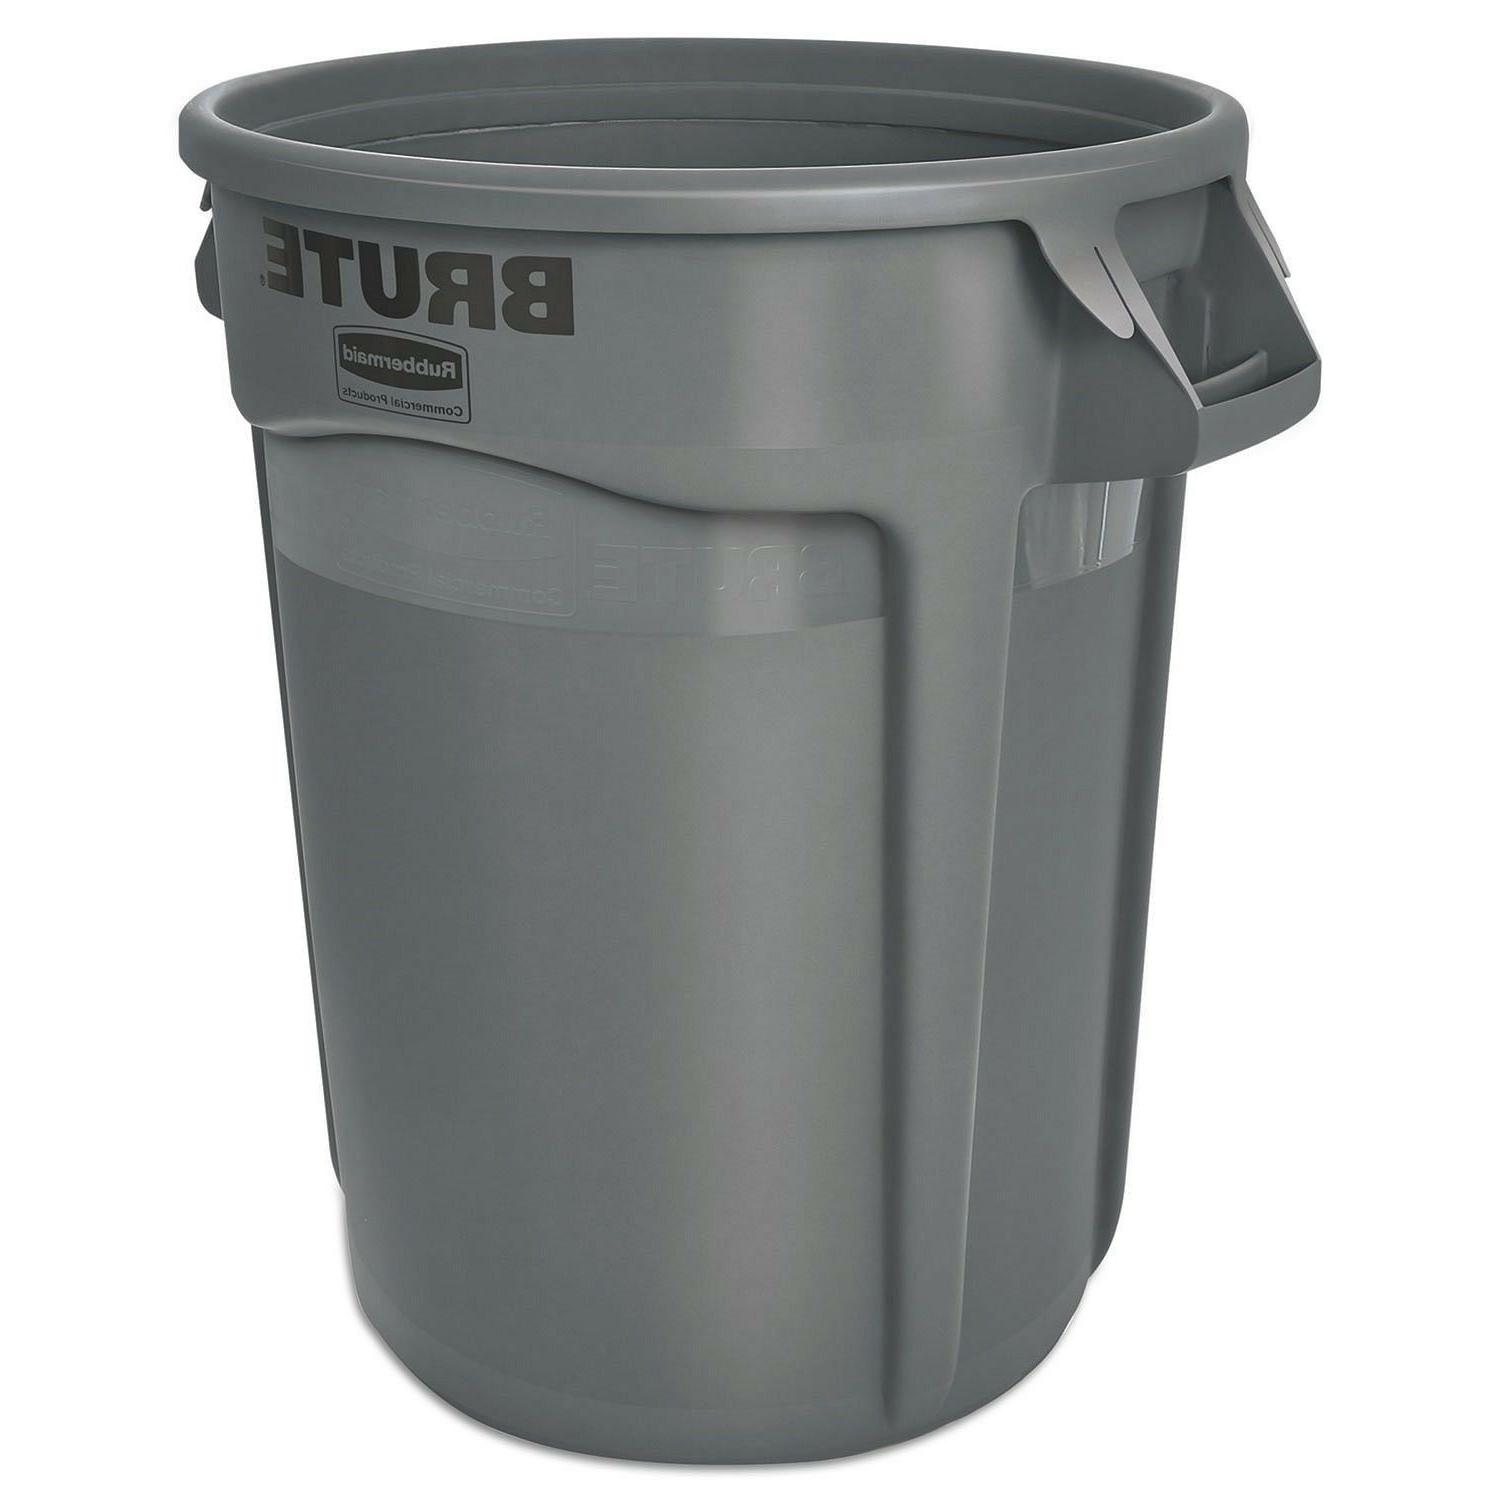 GRAY Industrial Commercial Brute Trash Bin Various